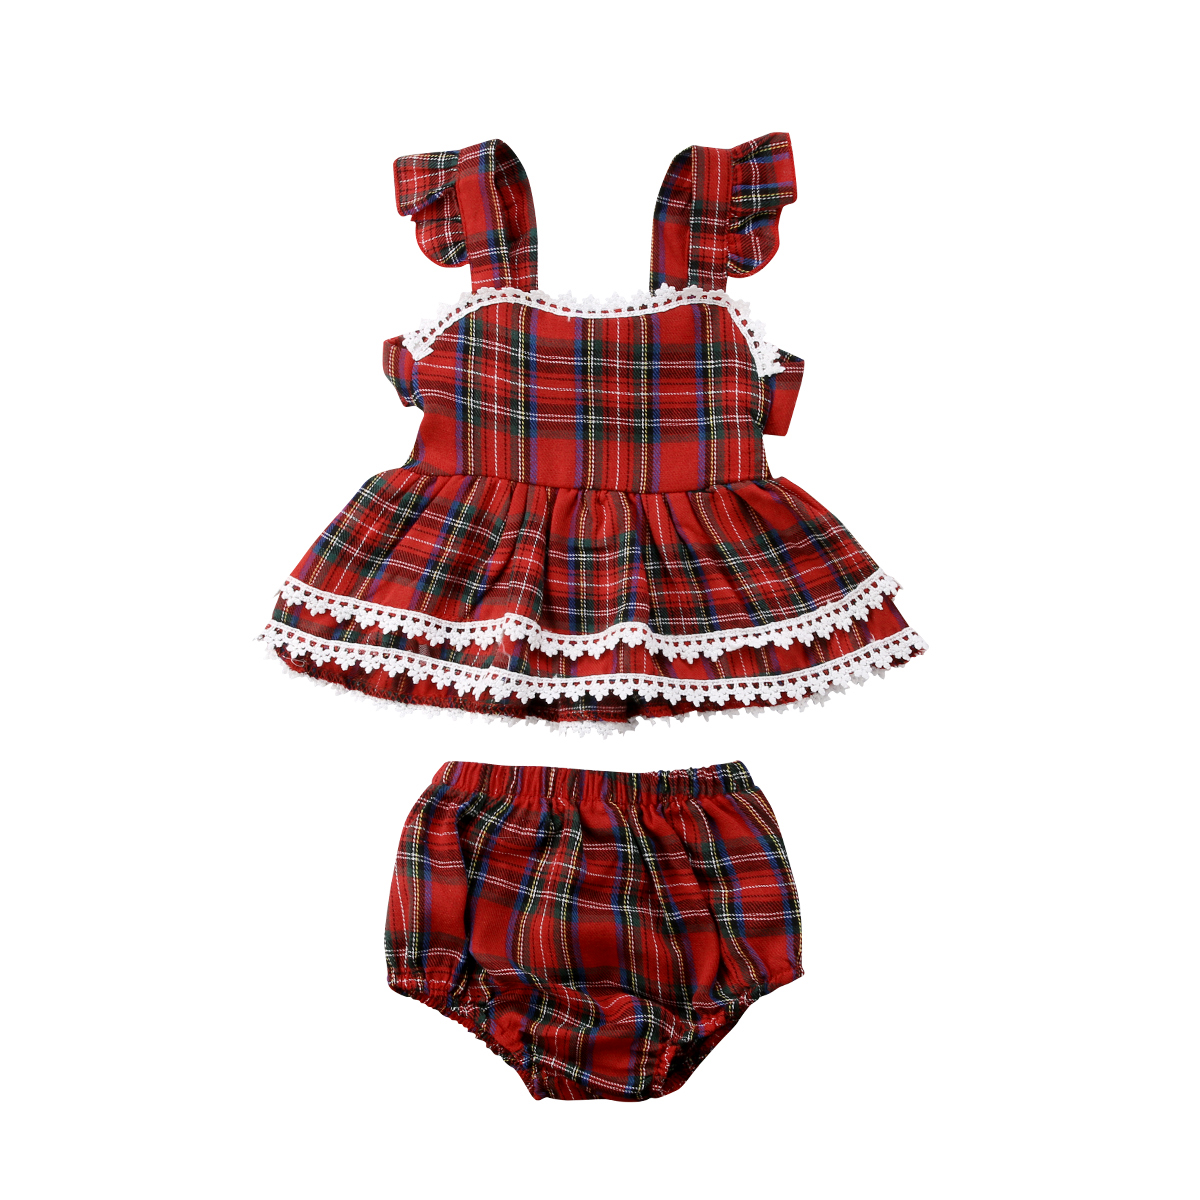 0-3Y Toddler Kids Baby Girls Red Plaid Clothes Set Backless Ruffles T-shirt Tops + Bottom Shorts Outfits